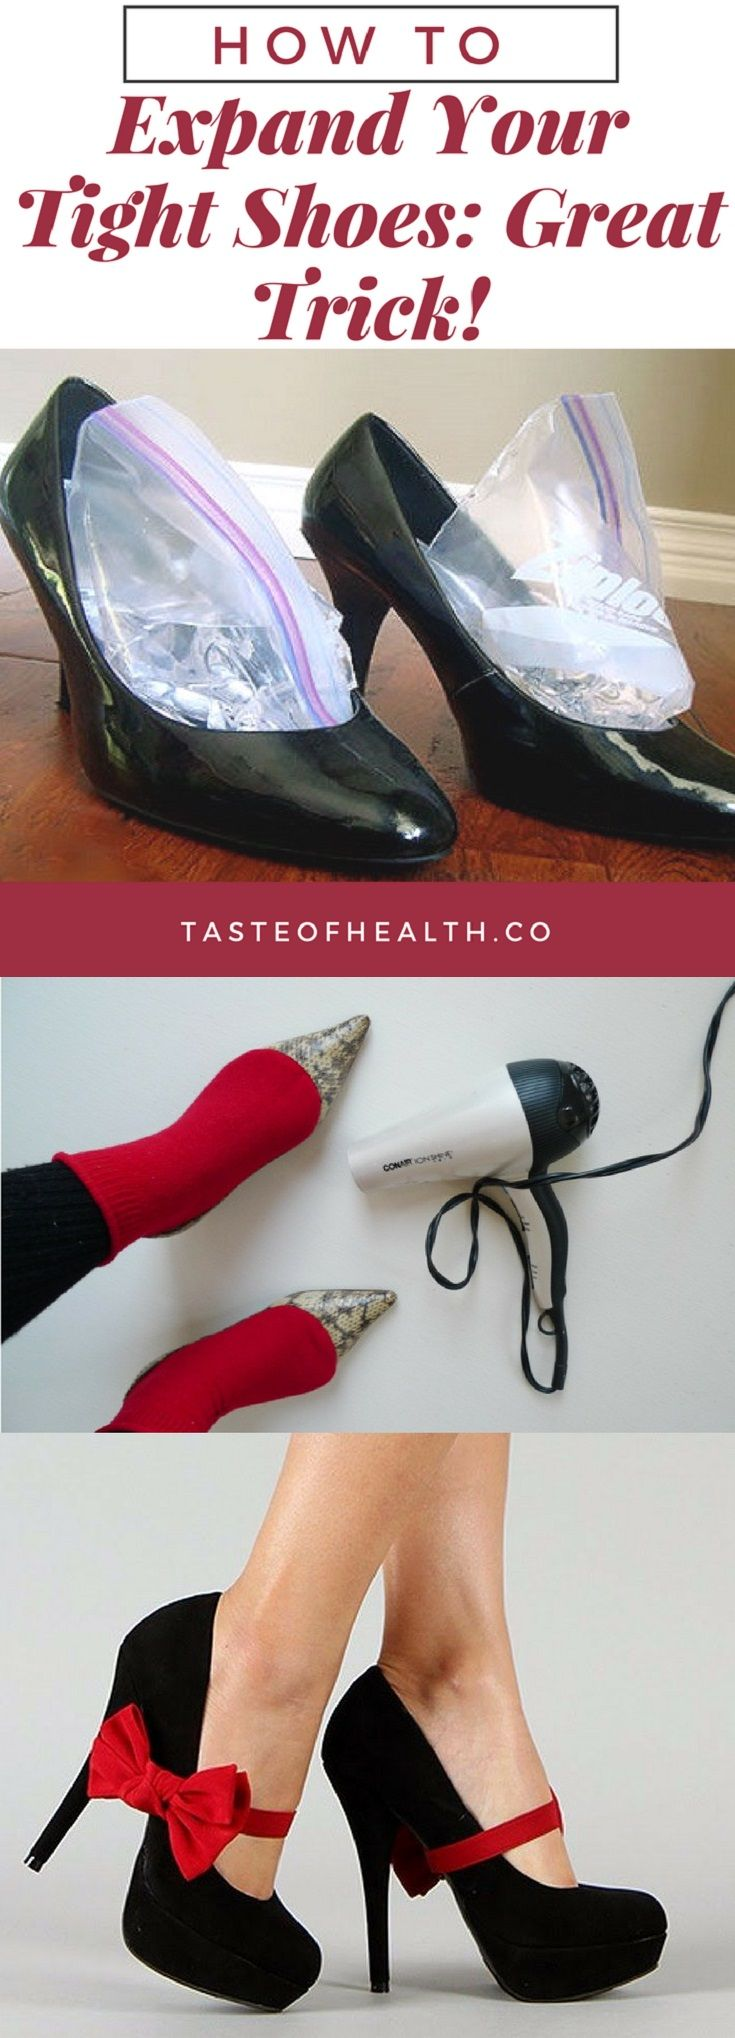 How To Expand Your Tight Shoes: Great Trick!